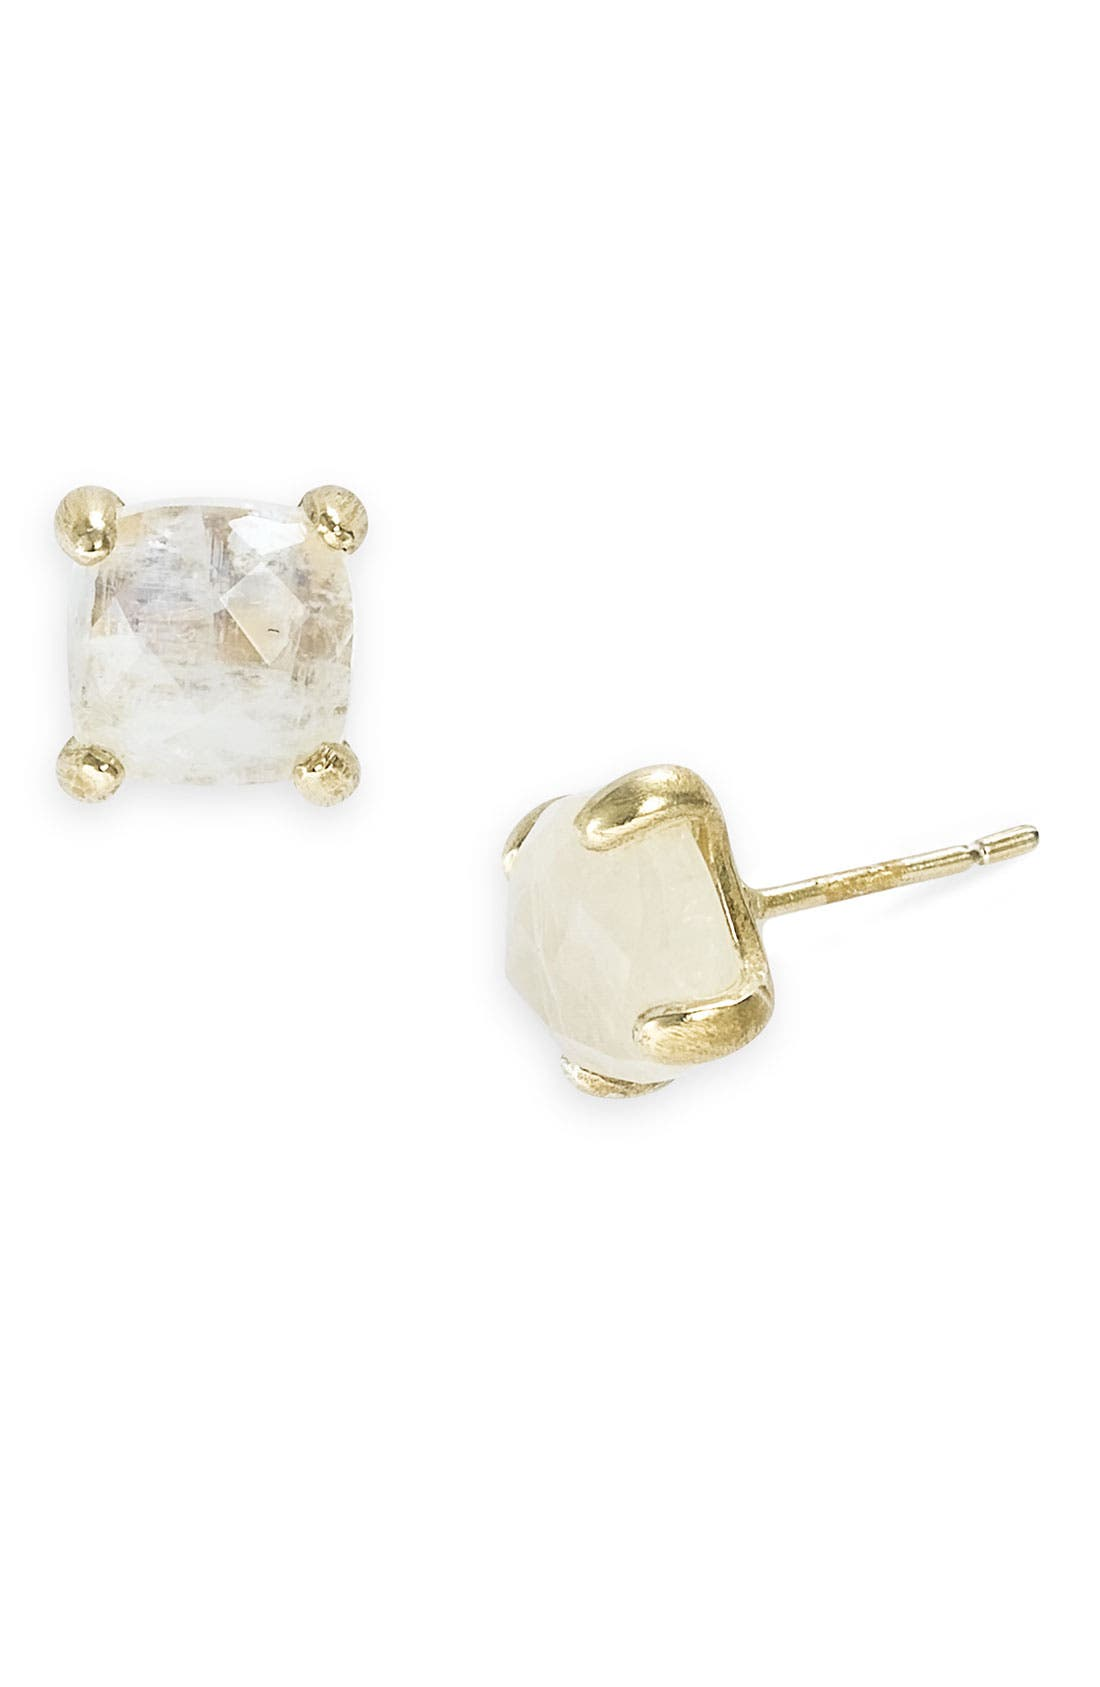 Main Image - NuNu Designs Square Semiprecious Stud Earrings